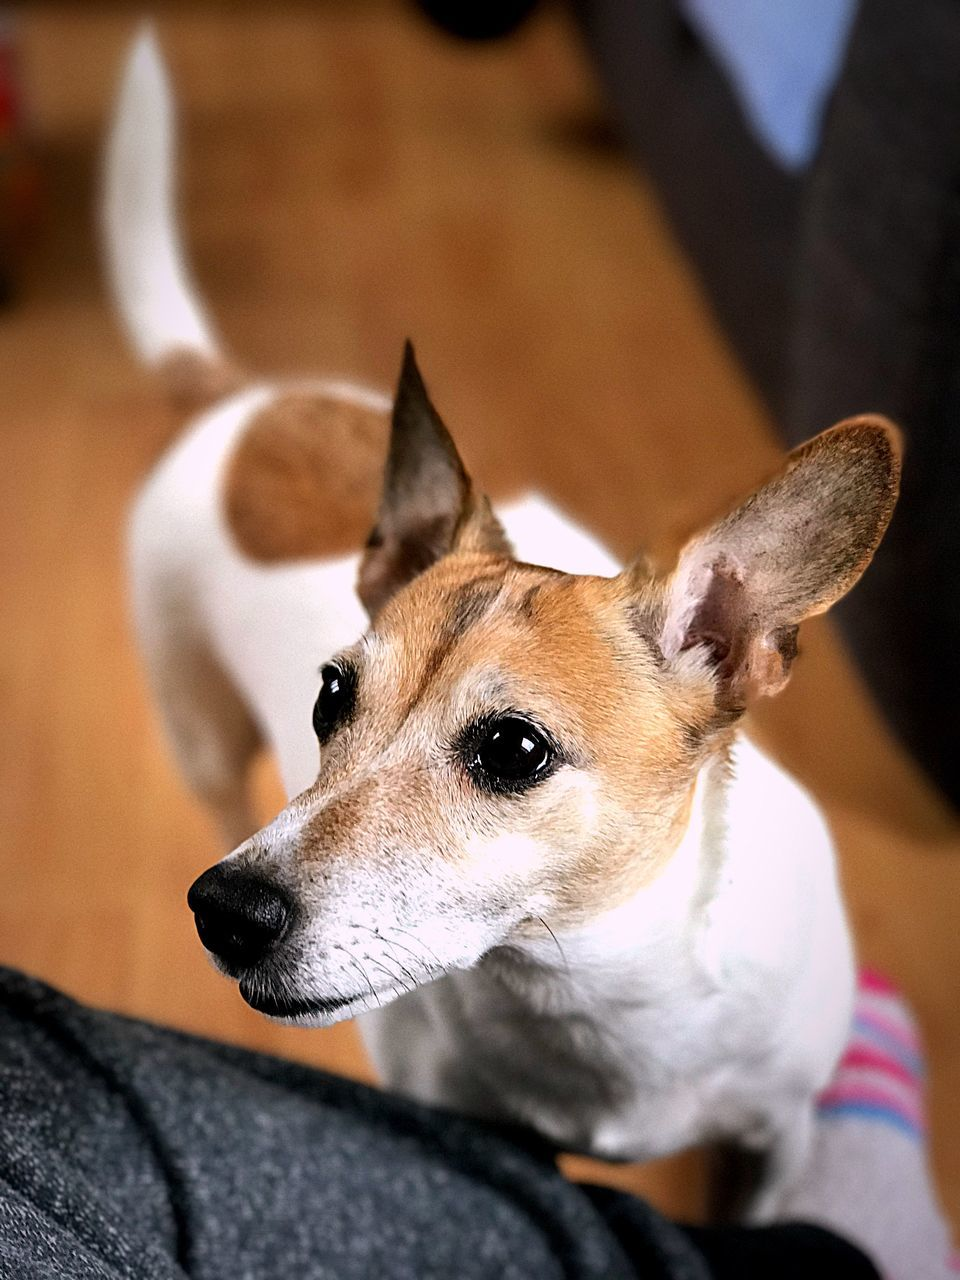 pets, dog, animal themes, domestic animals, mammal, one animal, indoors, close-up, one person, sitting, portrait, day